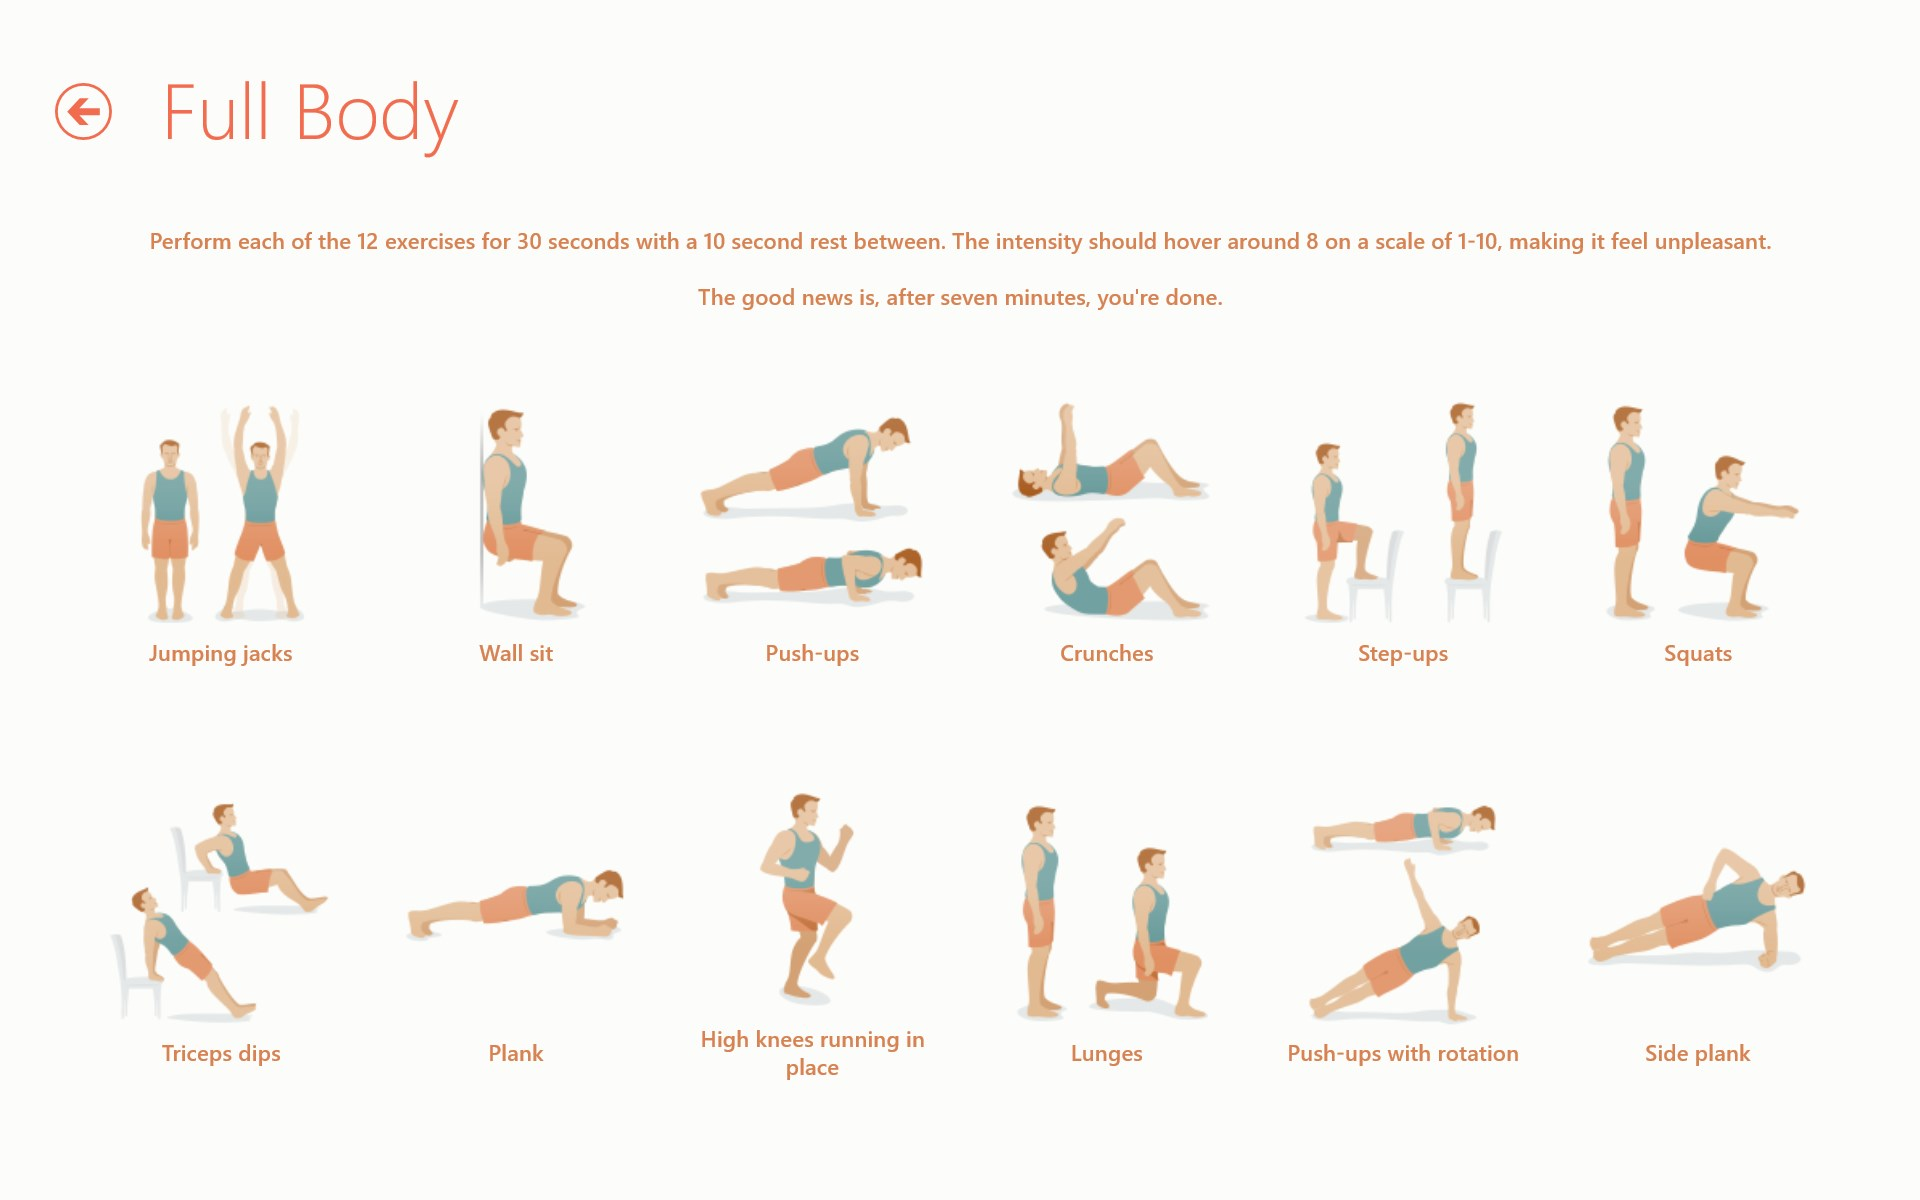 Seven - 7 Minute Workout Challenge